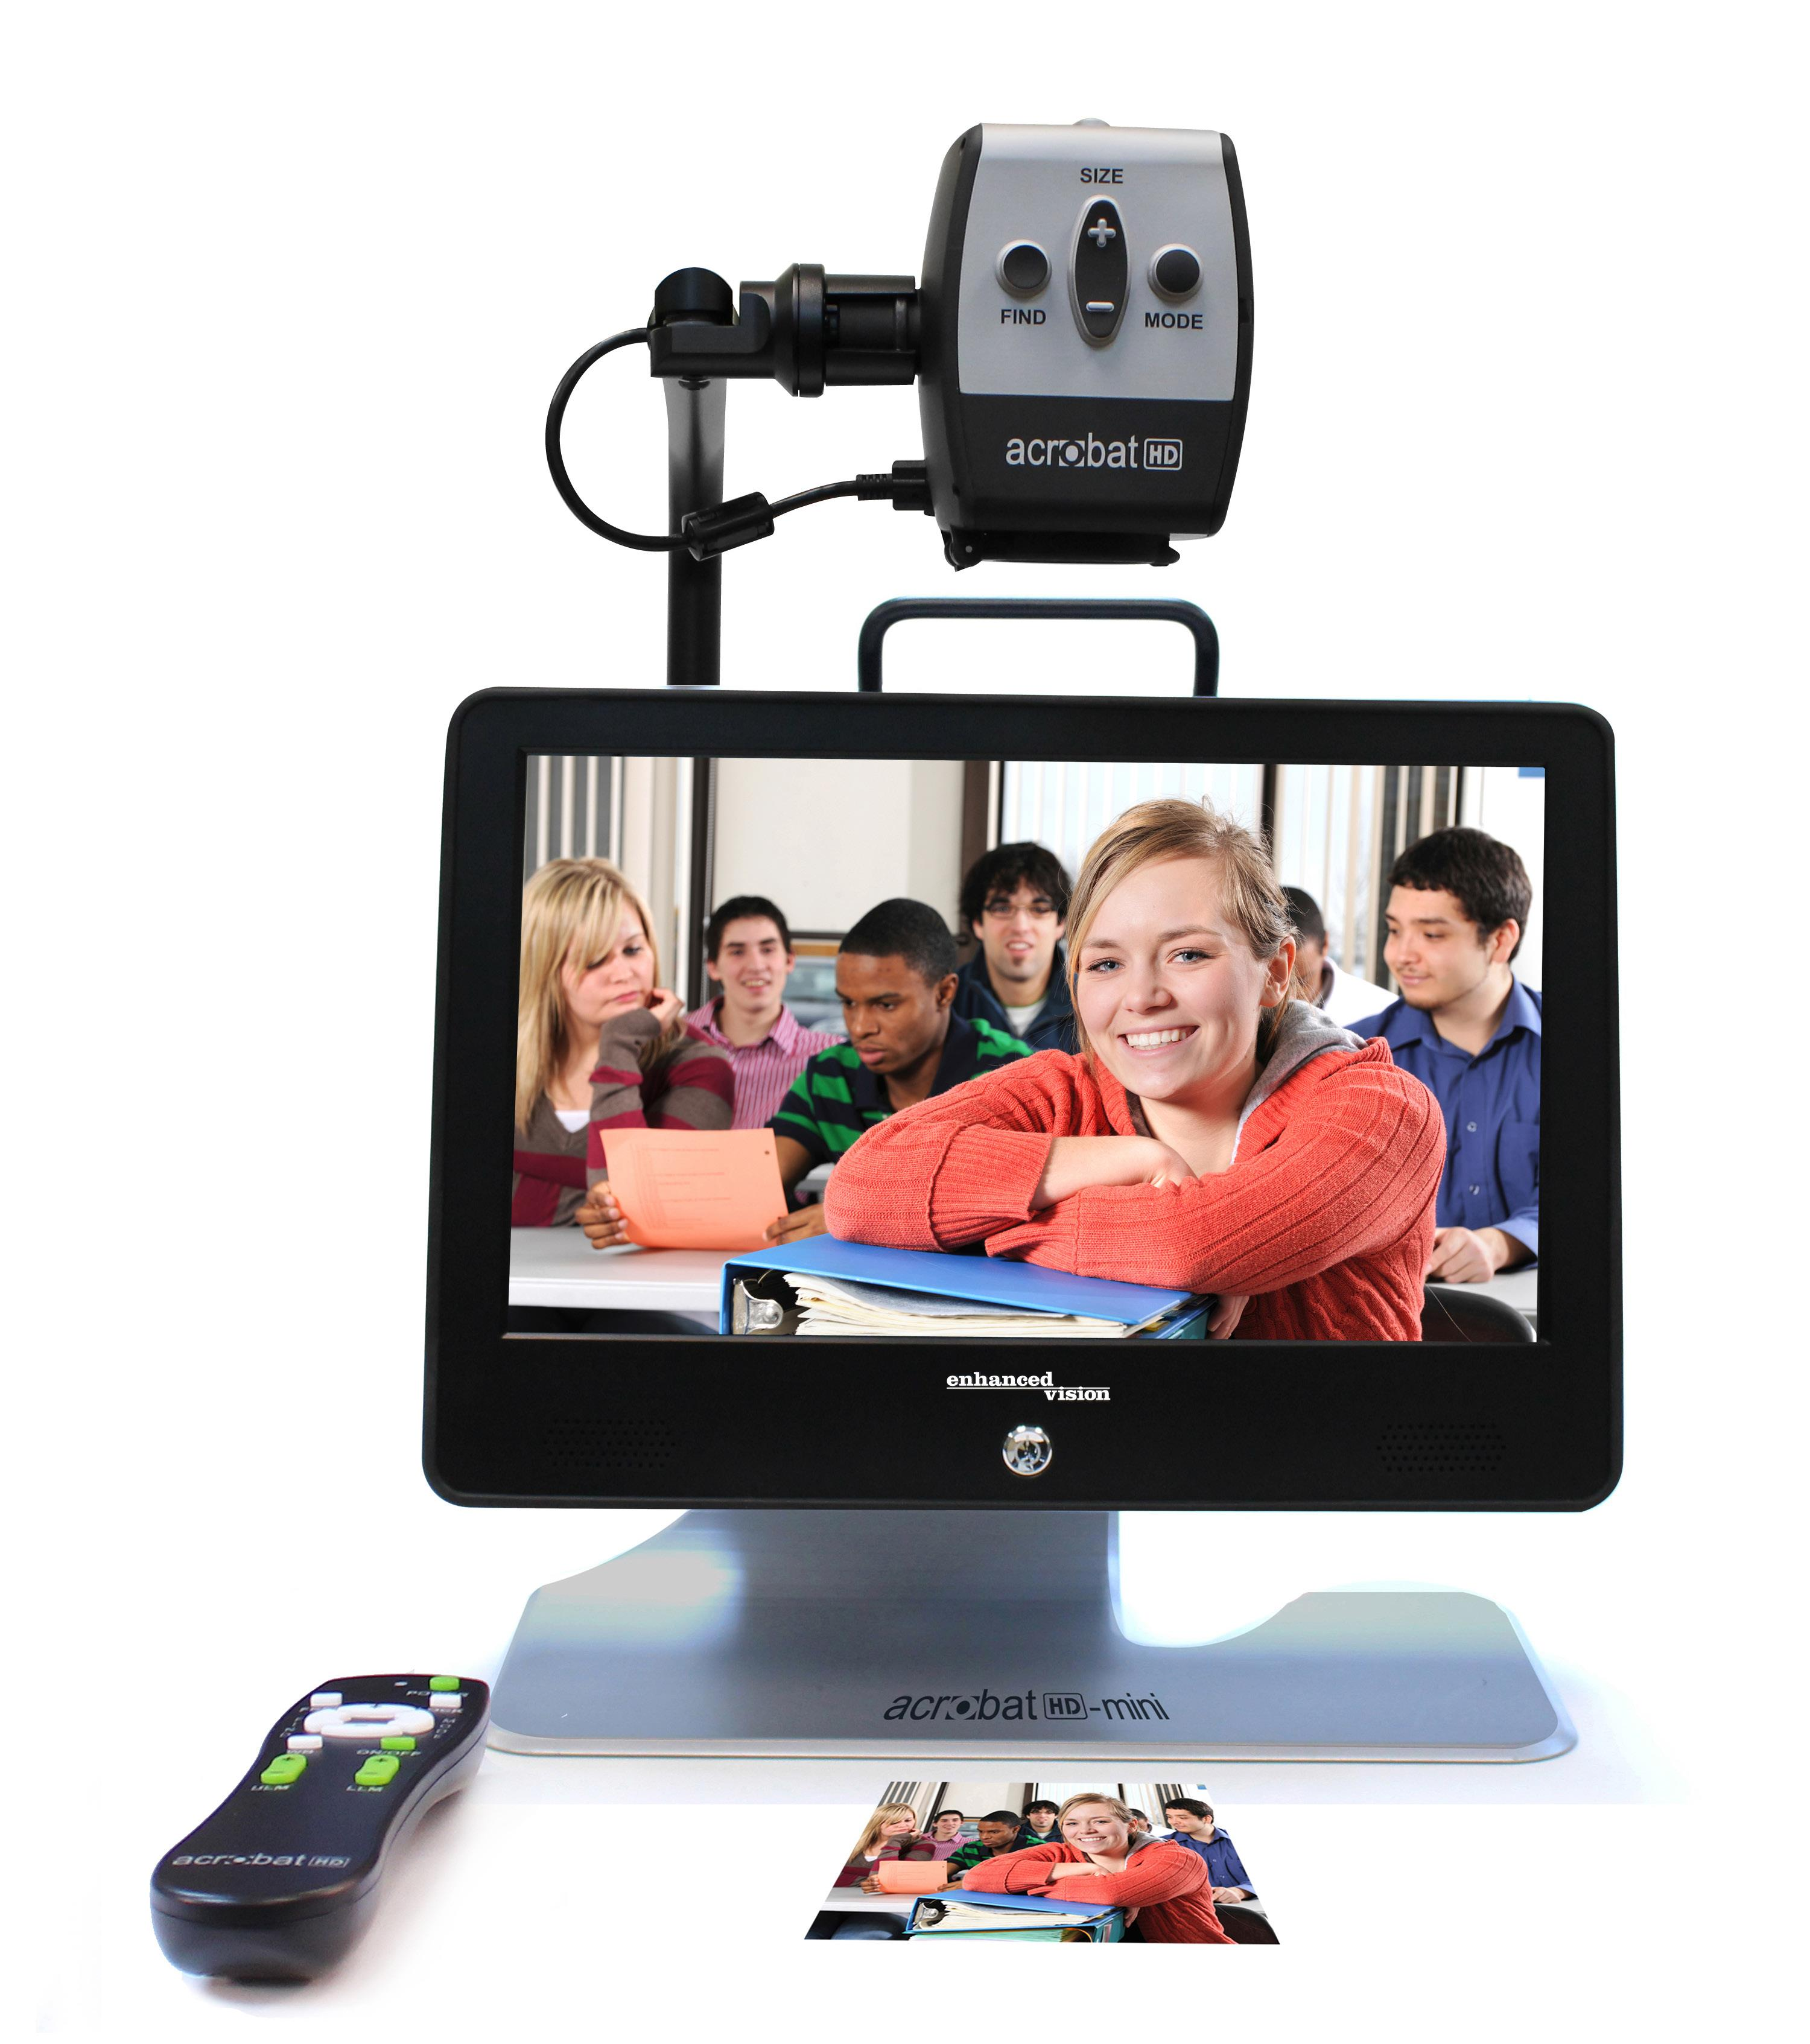 Acrobat HD Mini with remote looking at picthure of Teens in Classroom